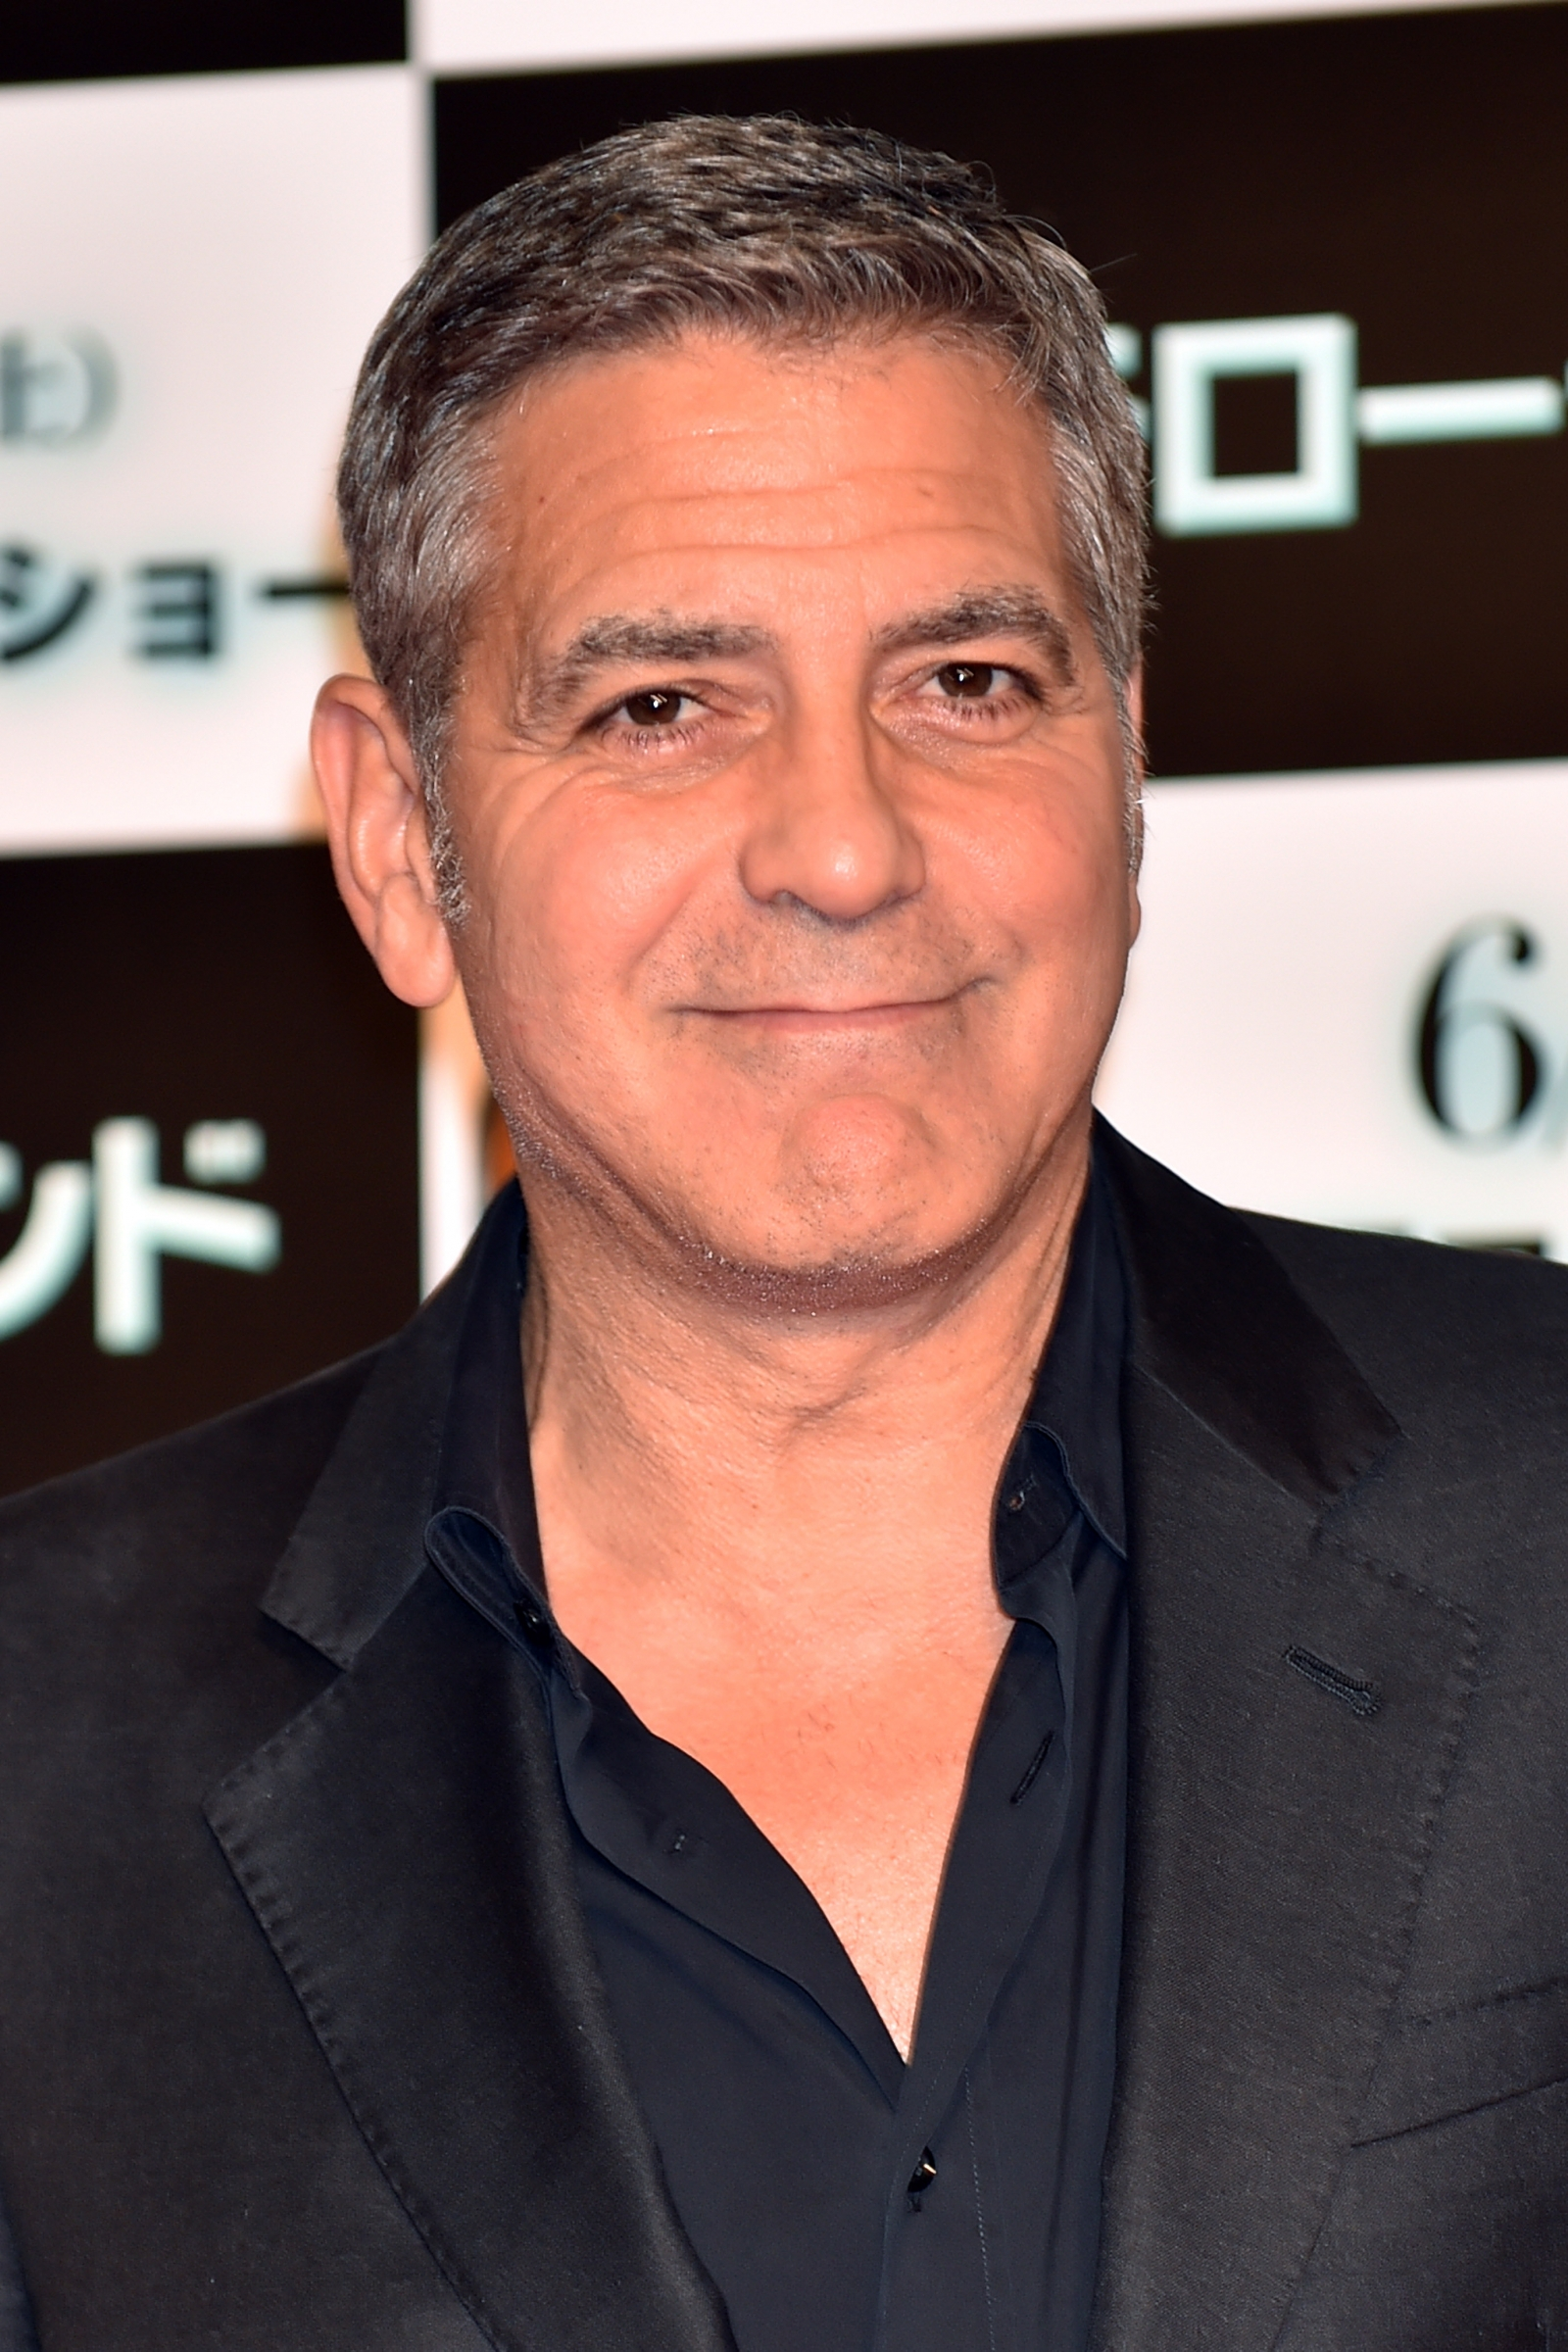 George Clooney On Men Getting Old You Just Have To Look The Best You Can And Not Worry About It